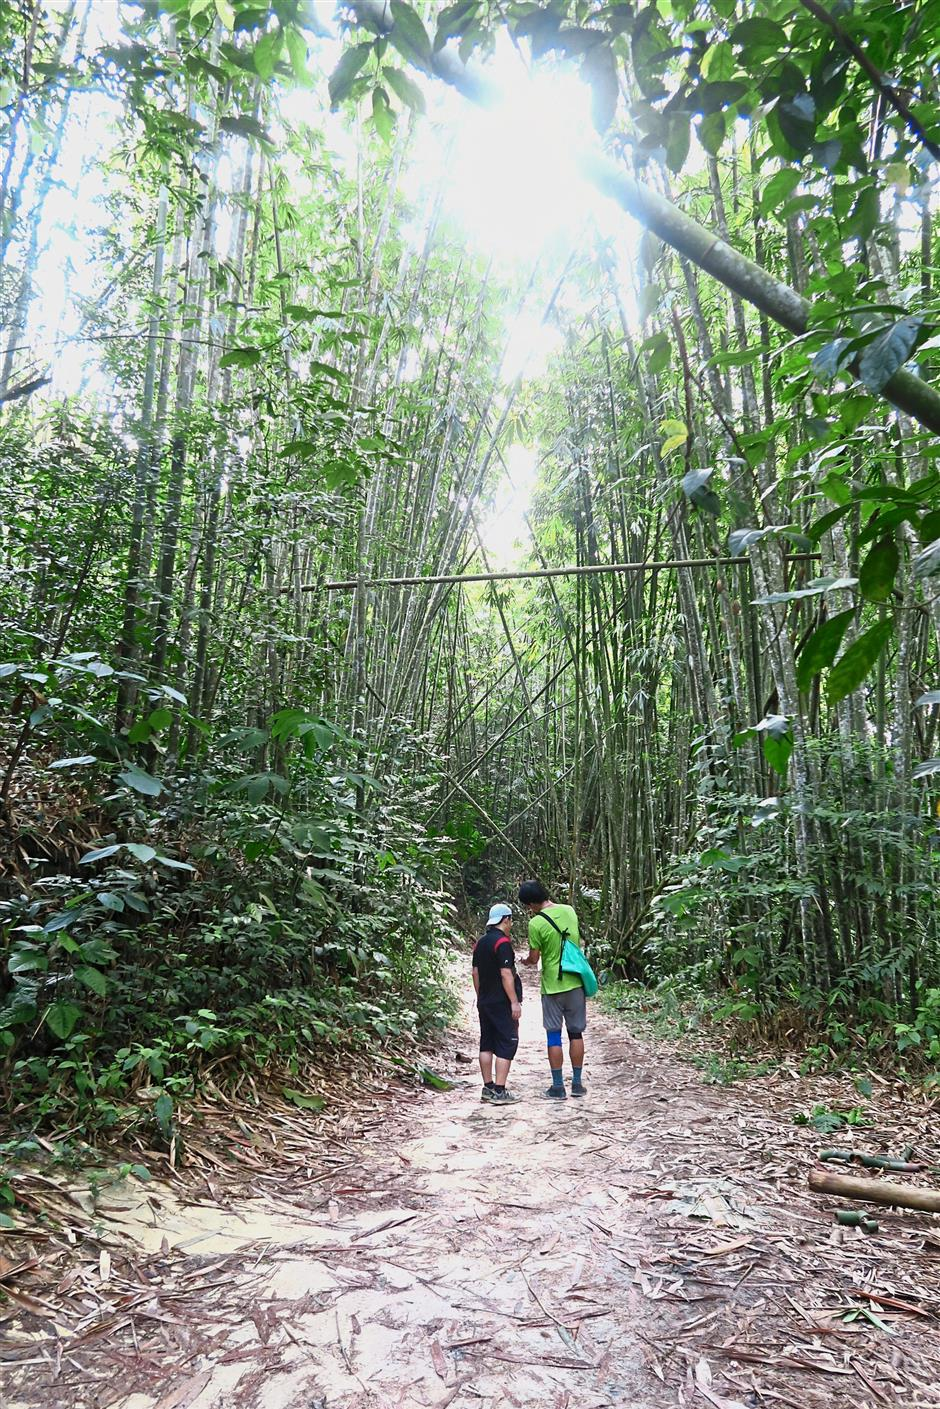 Tall bamboo trees make for a shady walk